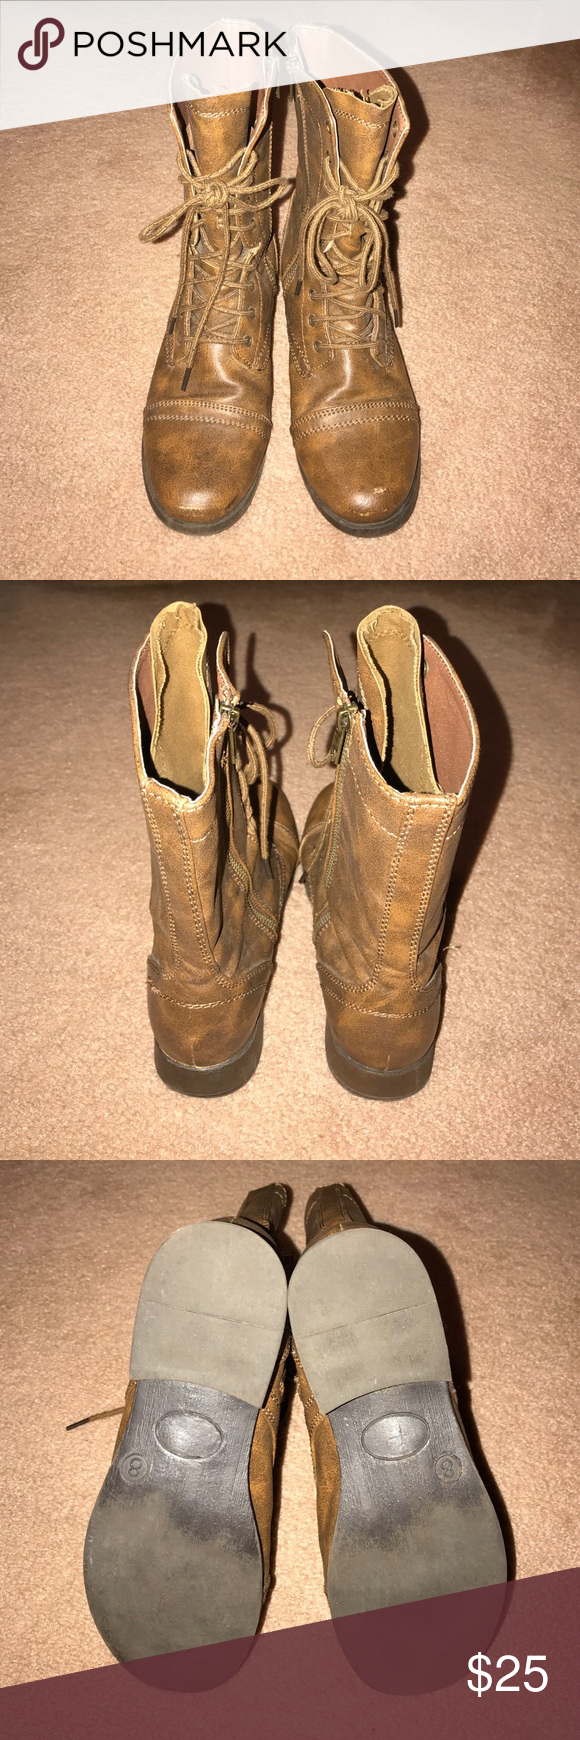 Brown Combat Boots Worn about 5 times, great condition combat boots. Super cute, they go with anything! No trades please. Shoes Combat & Moto Boots